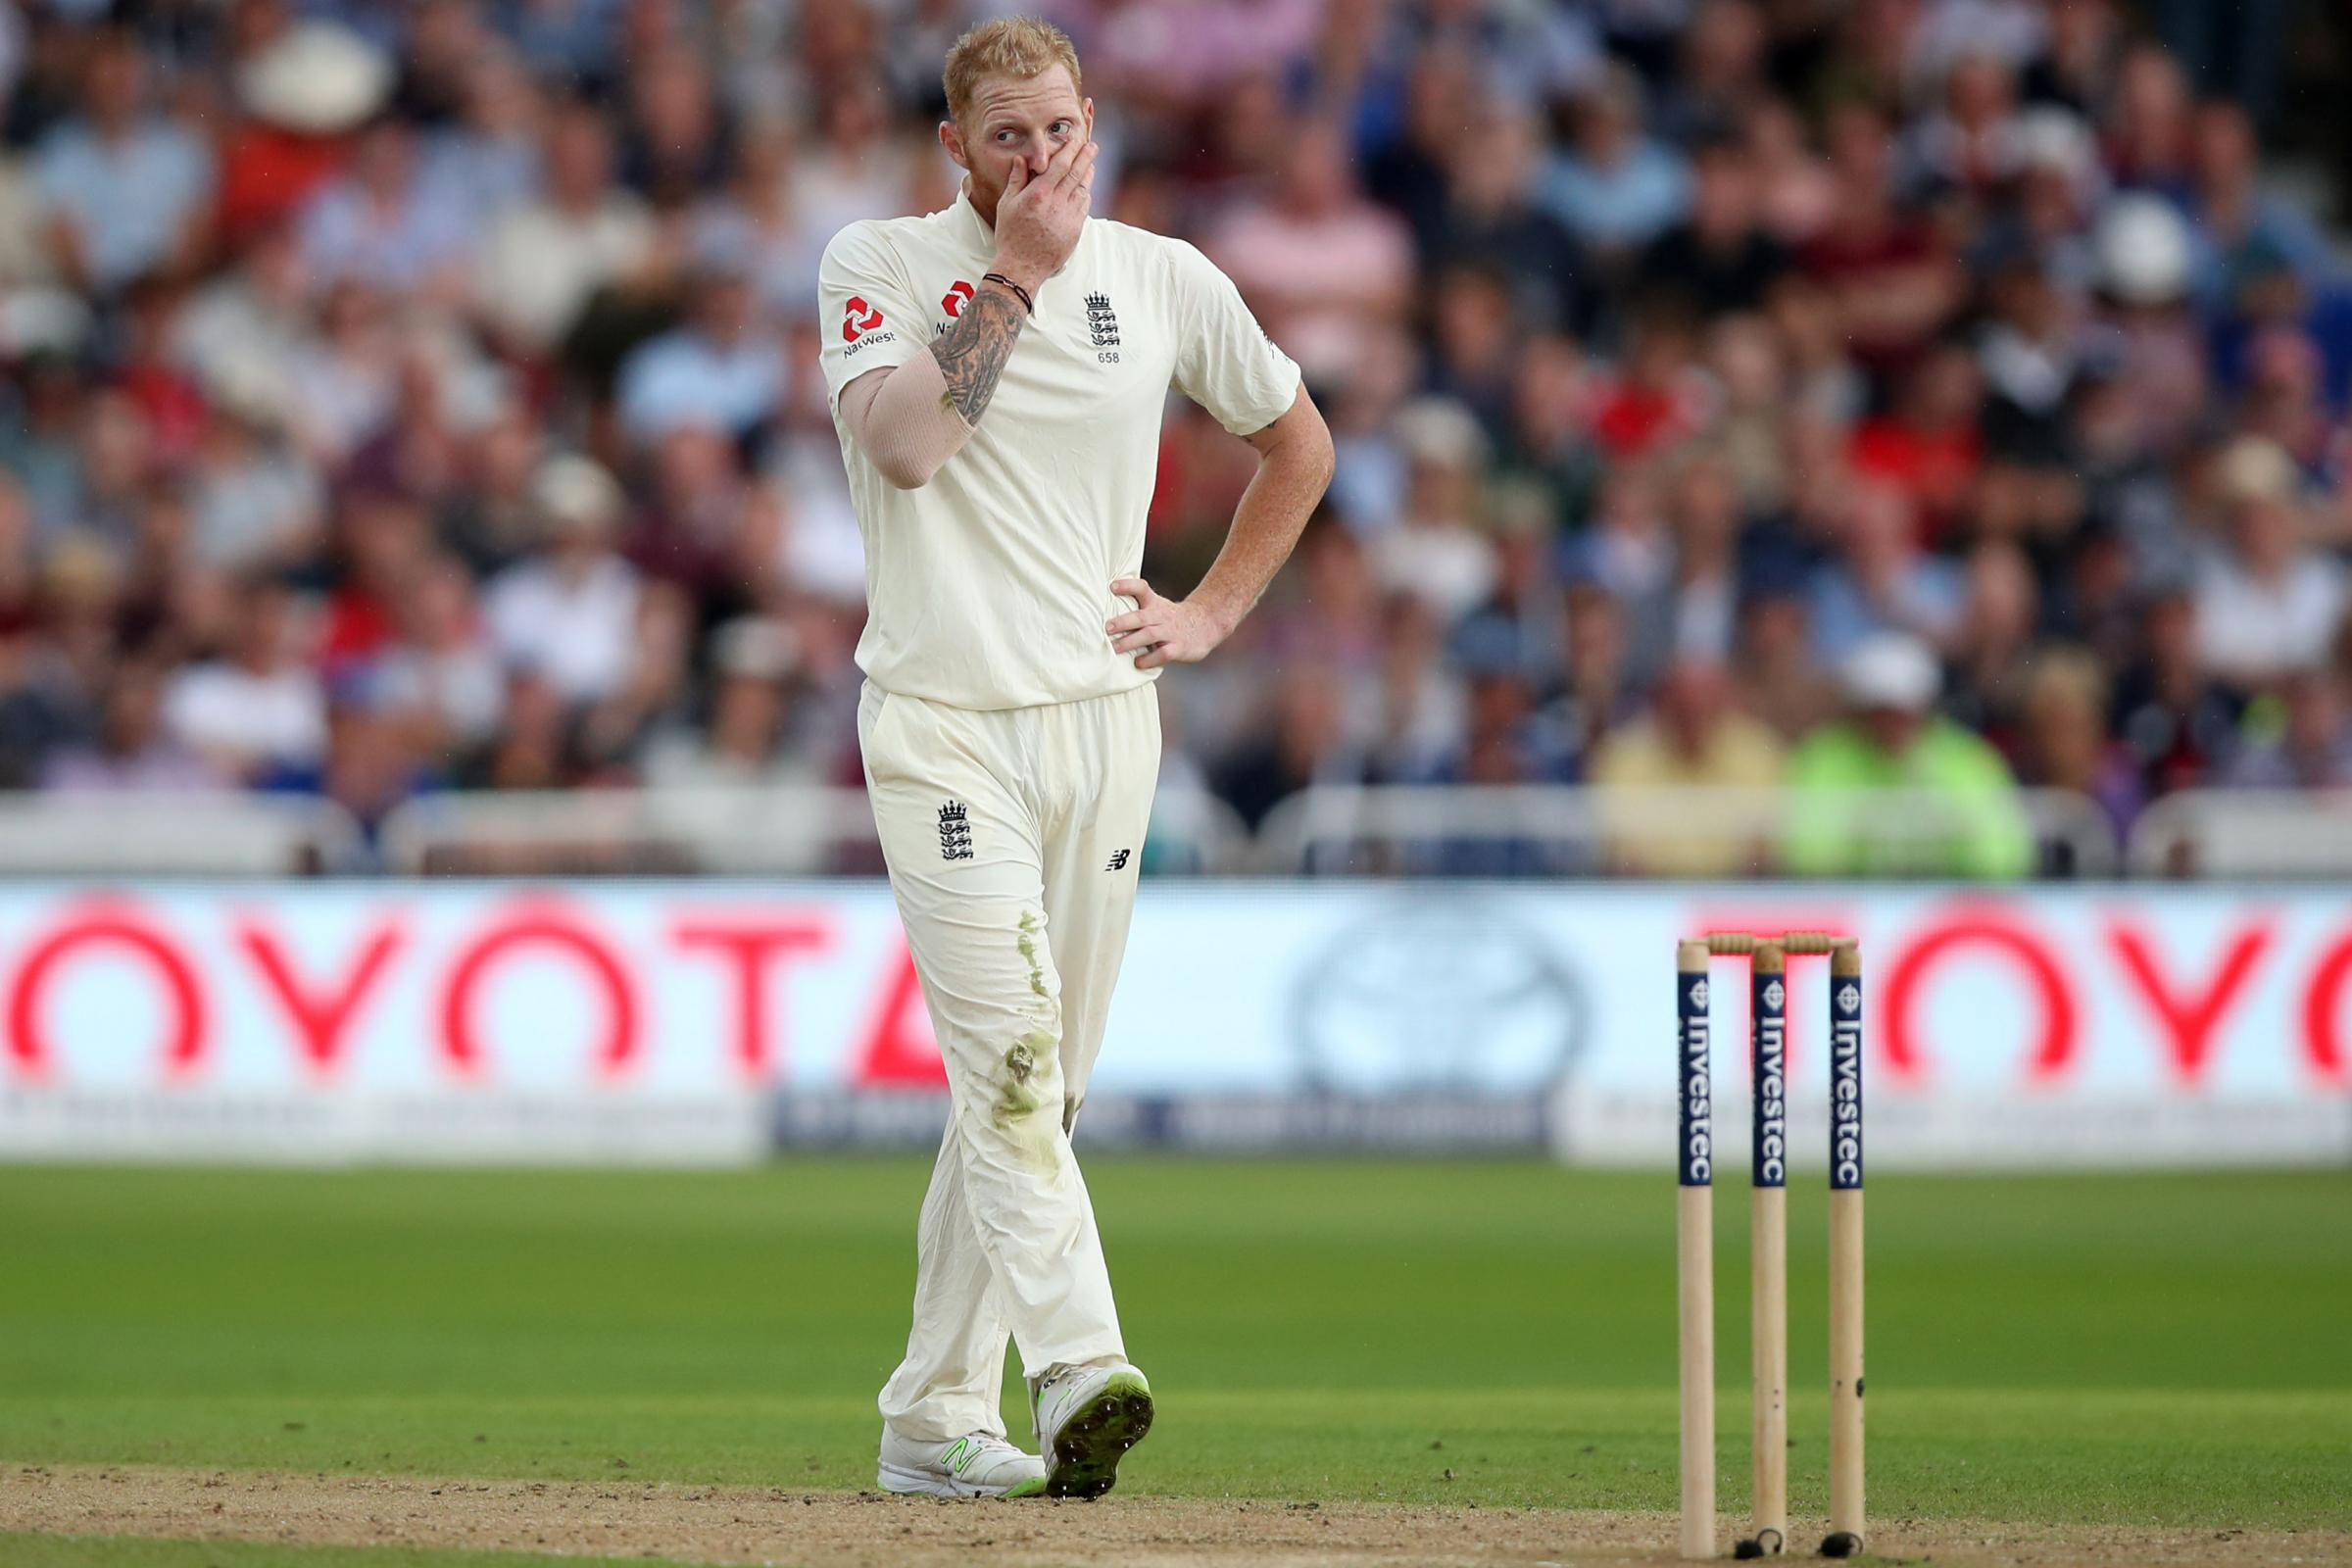 UNCERTAIN: Ben Stokes could miss the Ashes tour after being arrested on suspicion of actual bodily harm last week. Pic: PA Wire